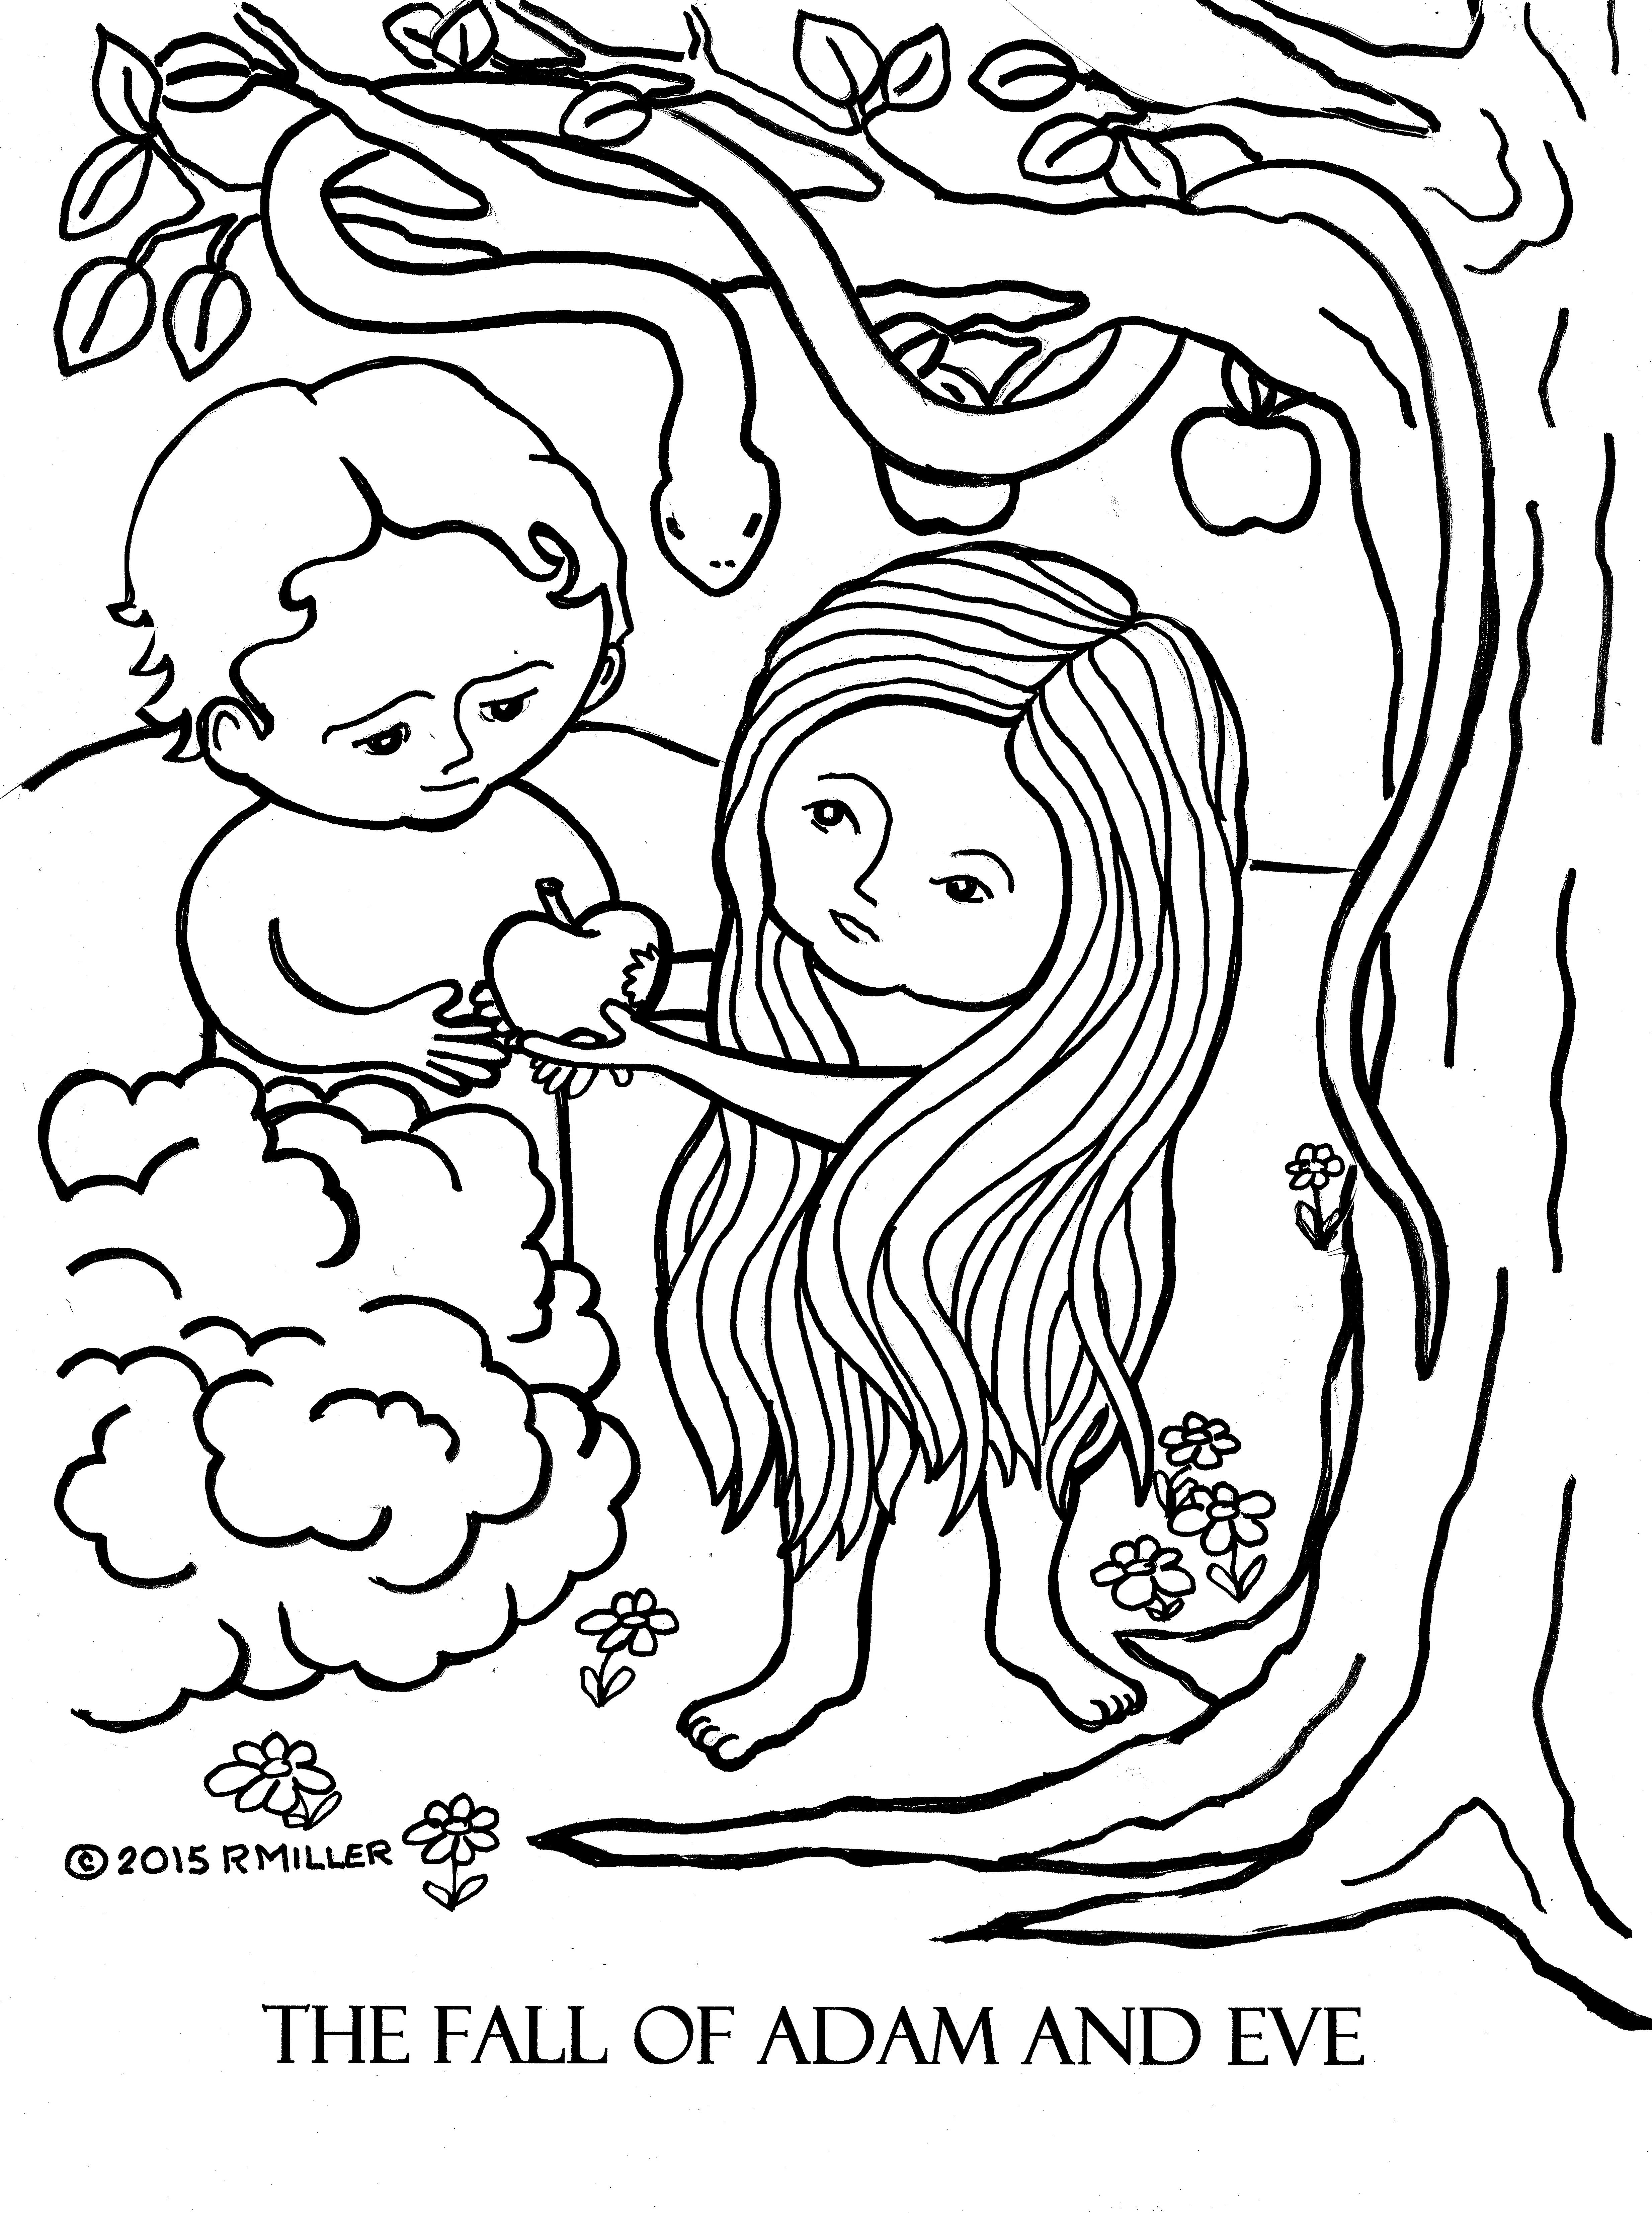 A Day 3 The Fall Of Adam And Eve Coloring Page Lg File HI